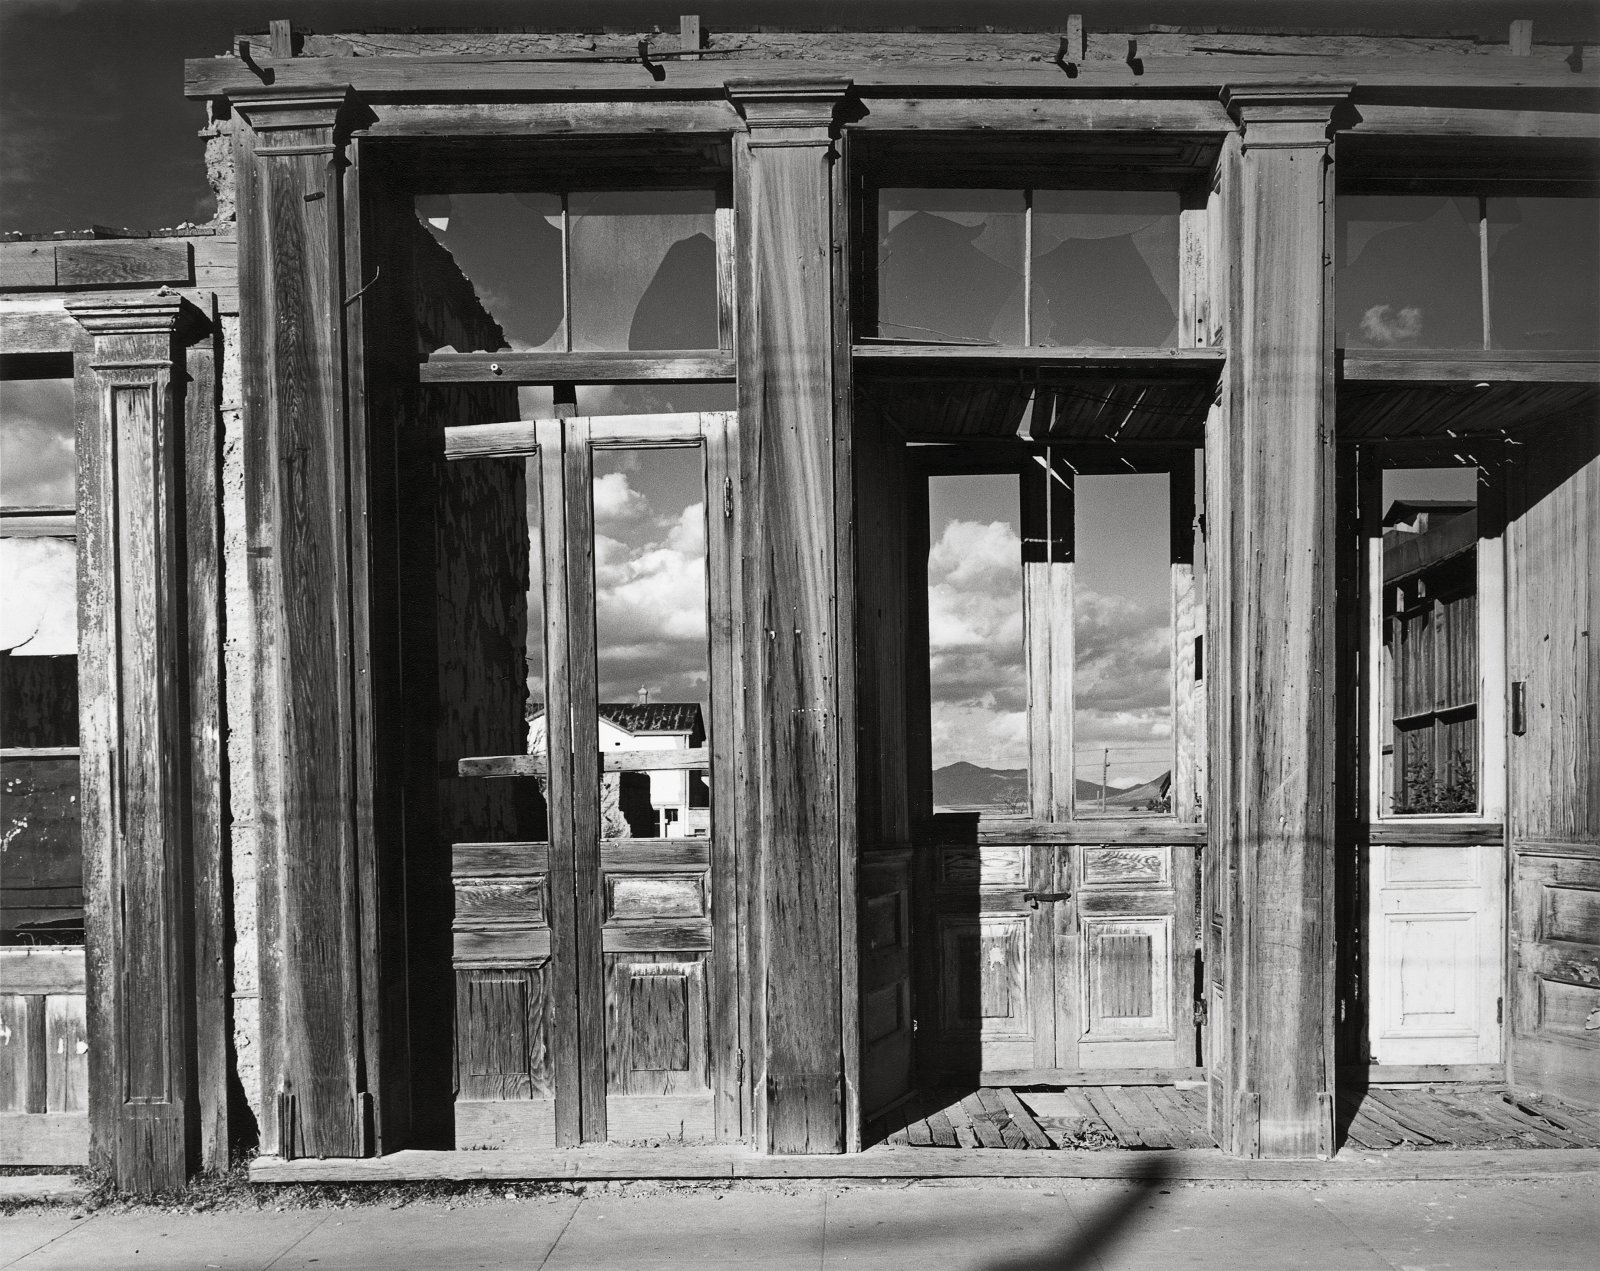 Wright Morris, Tombstone, Arizona, 1940 © Estate of Wright Morris